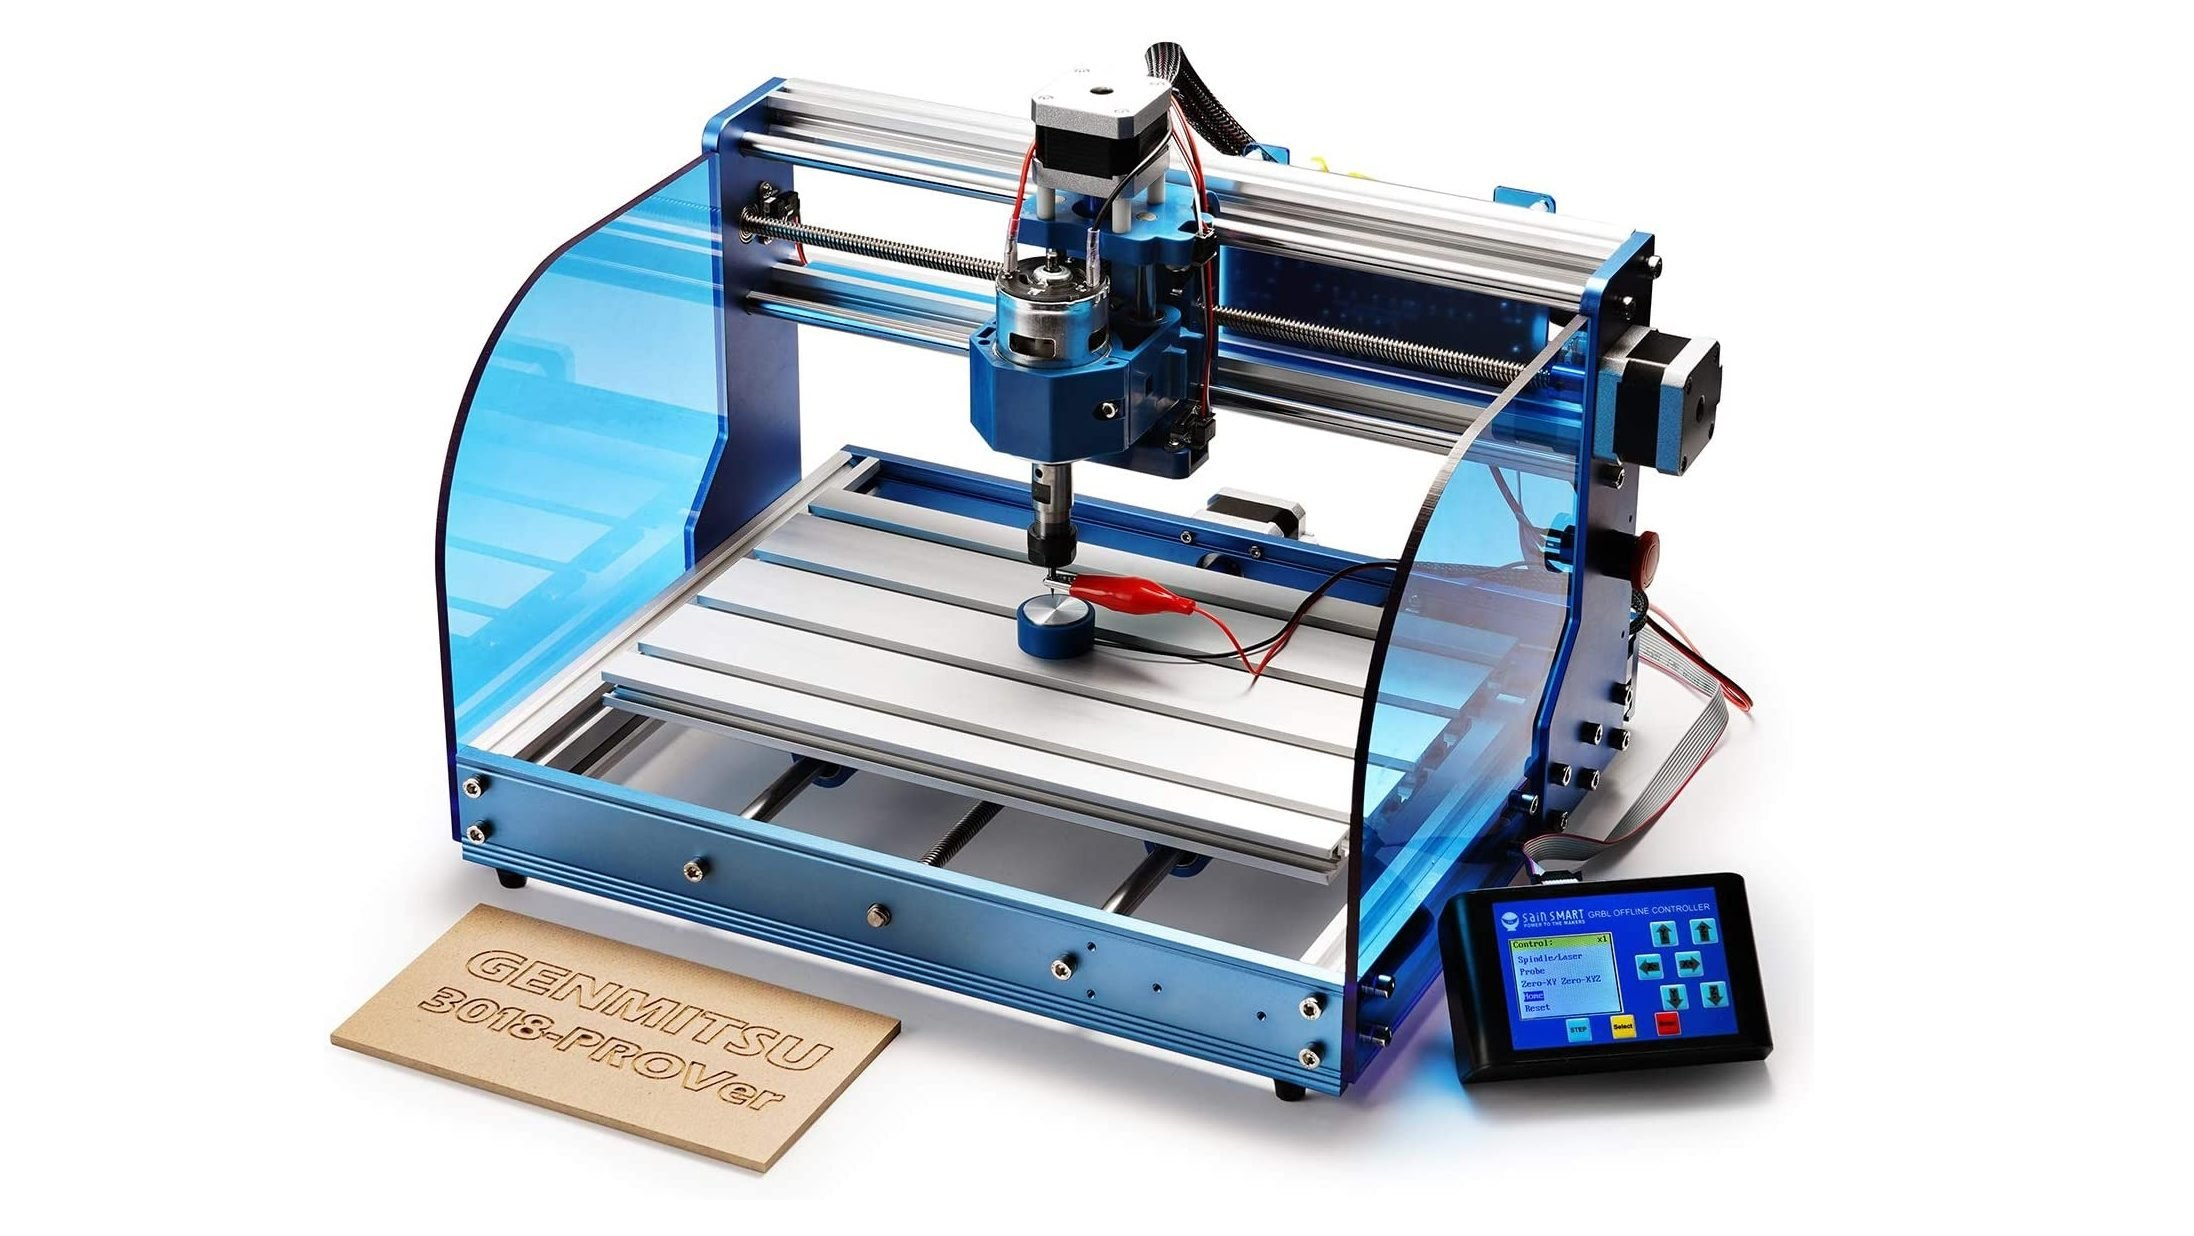 SainSmart Genmitsu CNC Router 3018-PROVer: Review the Specs | All3DP